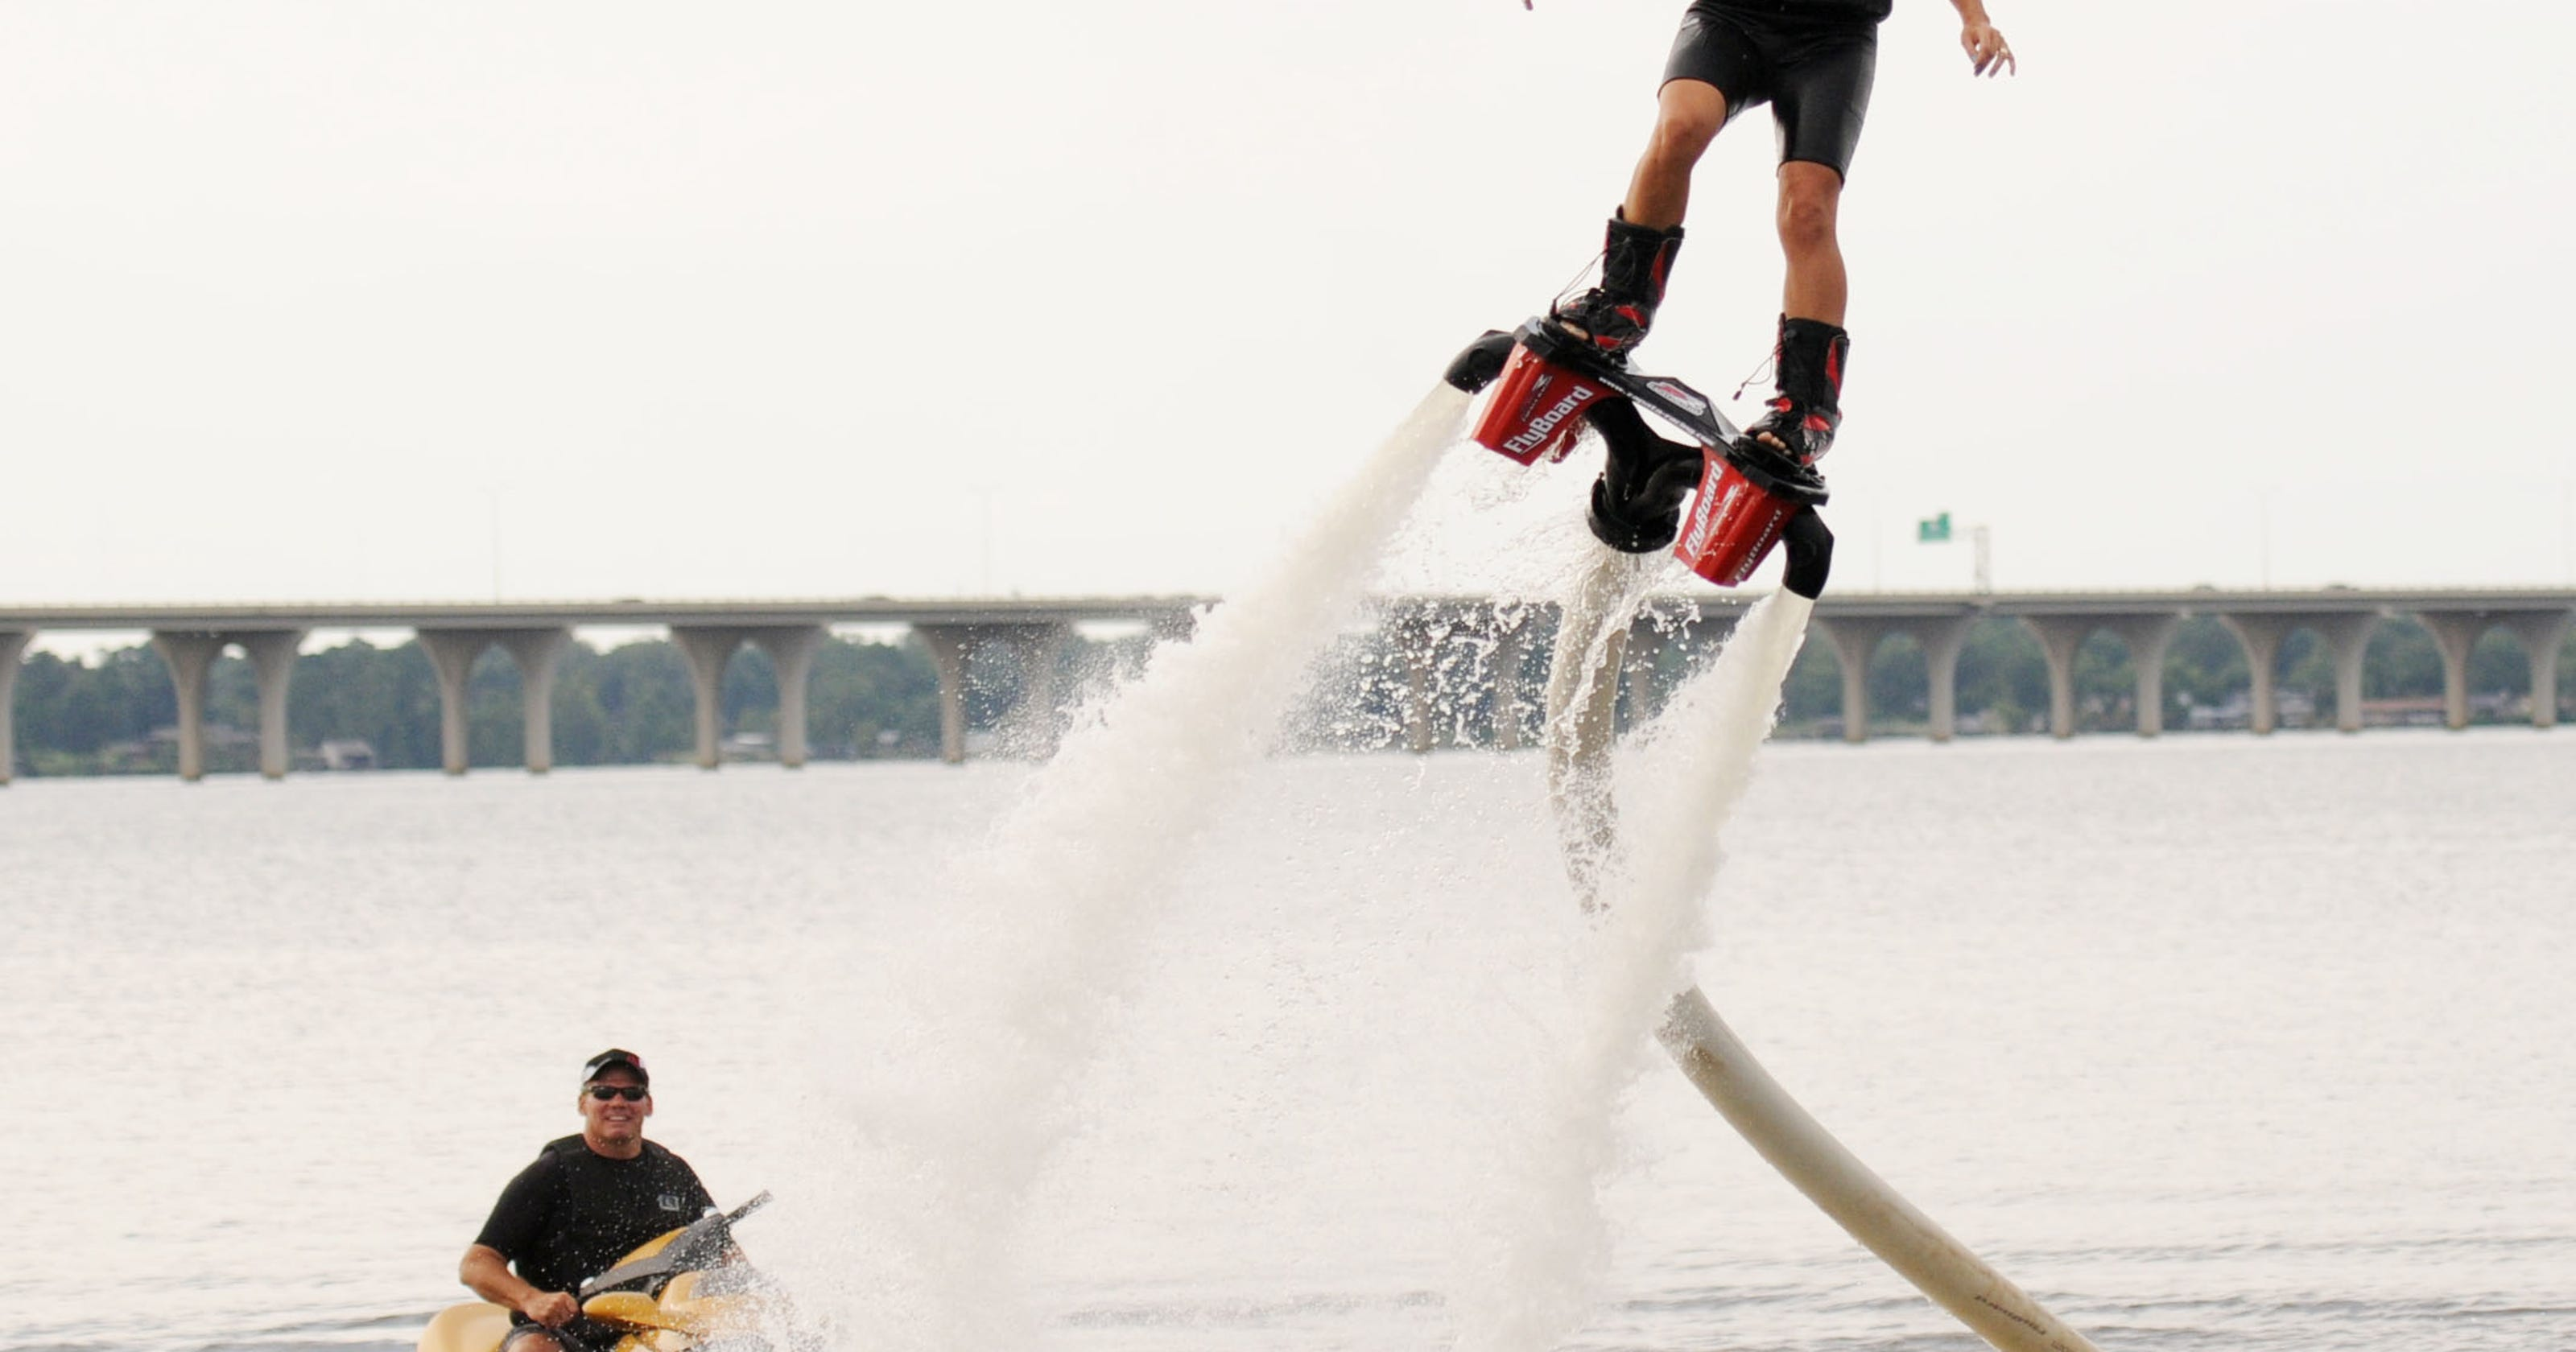 Five things to do this weekend in Shreveport-Bossier on homemade invention, homemade pwc lift, homemade segway, homemade cigarette lighter with flame, homemade hydrofoil,